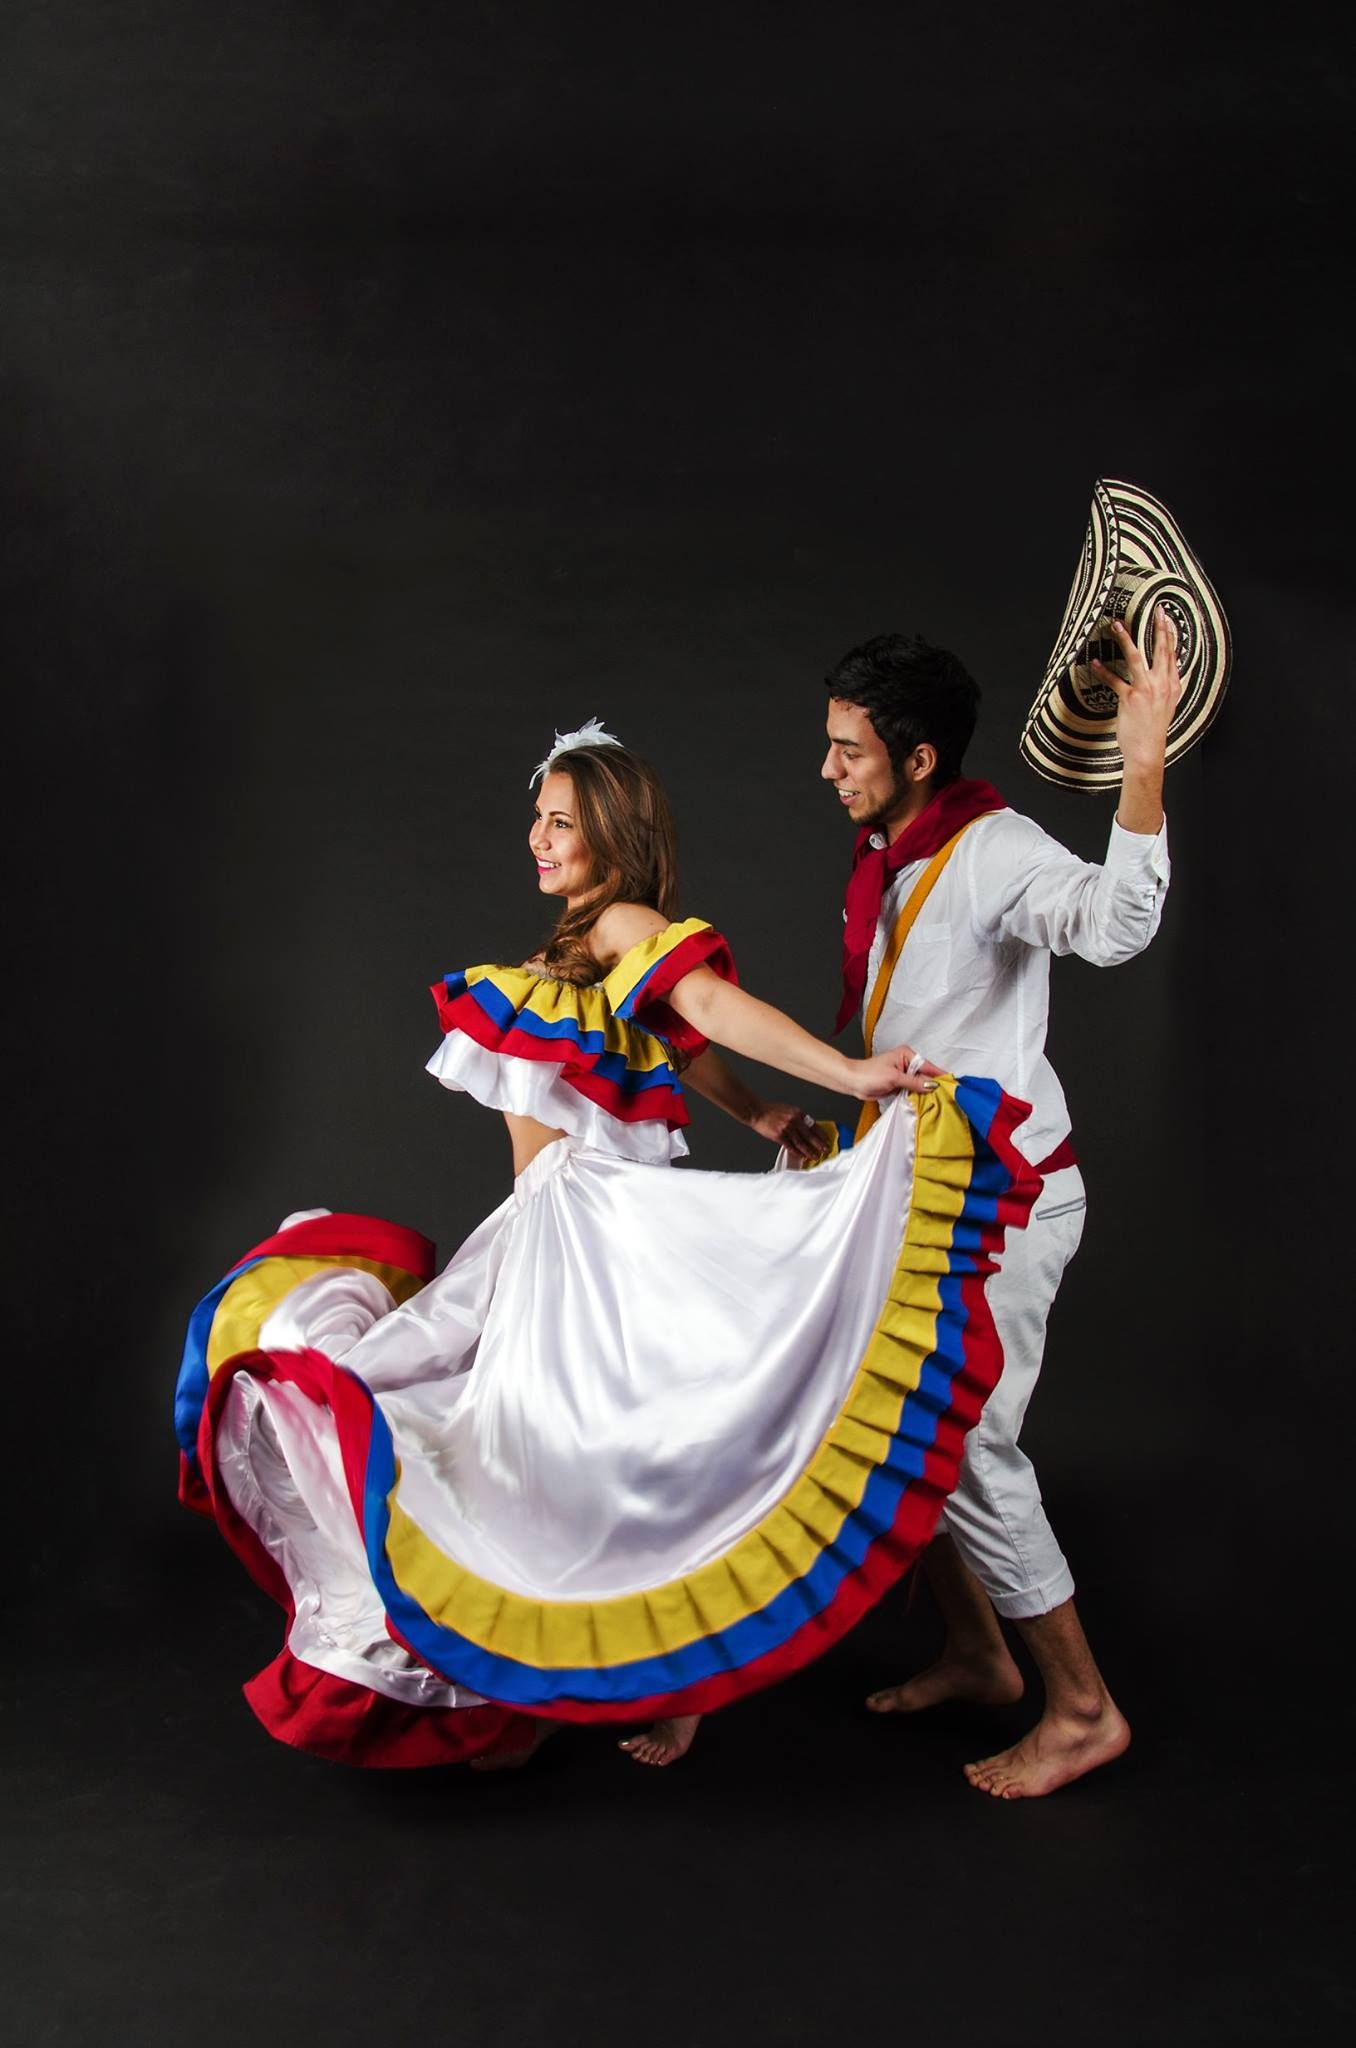 CumbiaColombiana Baile Pinterest Colombia